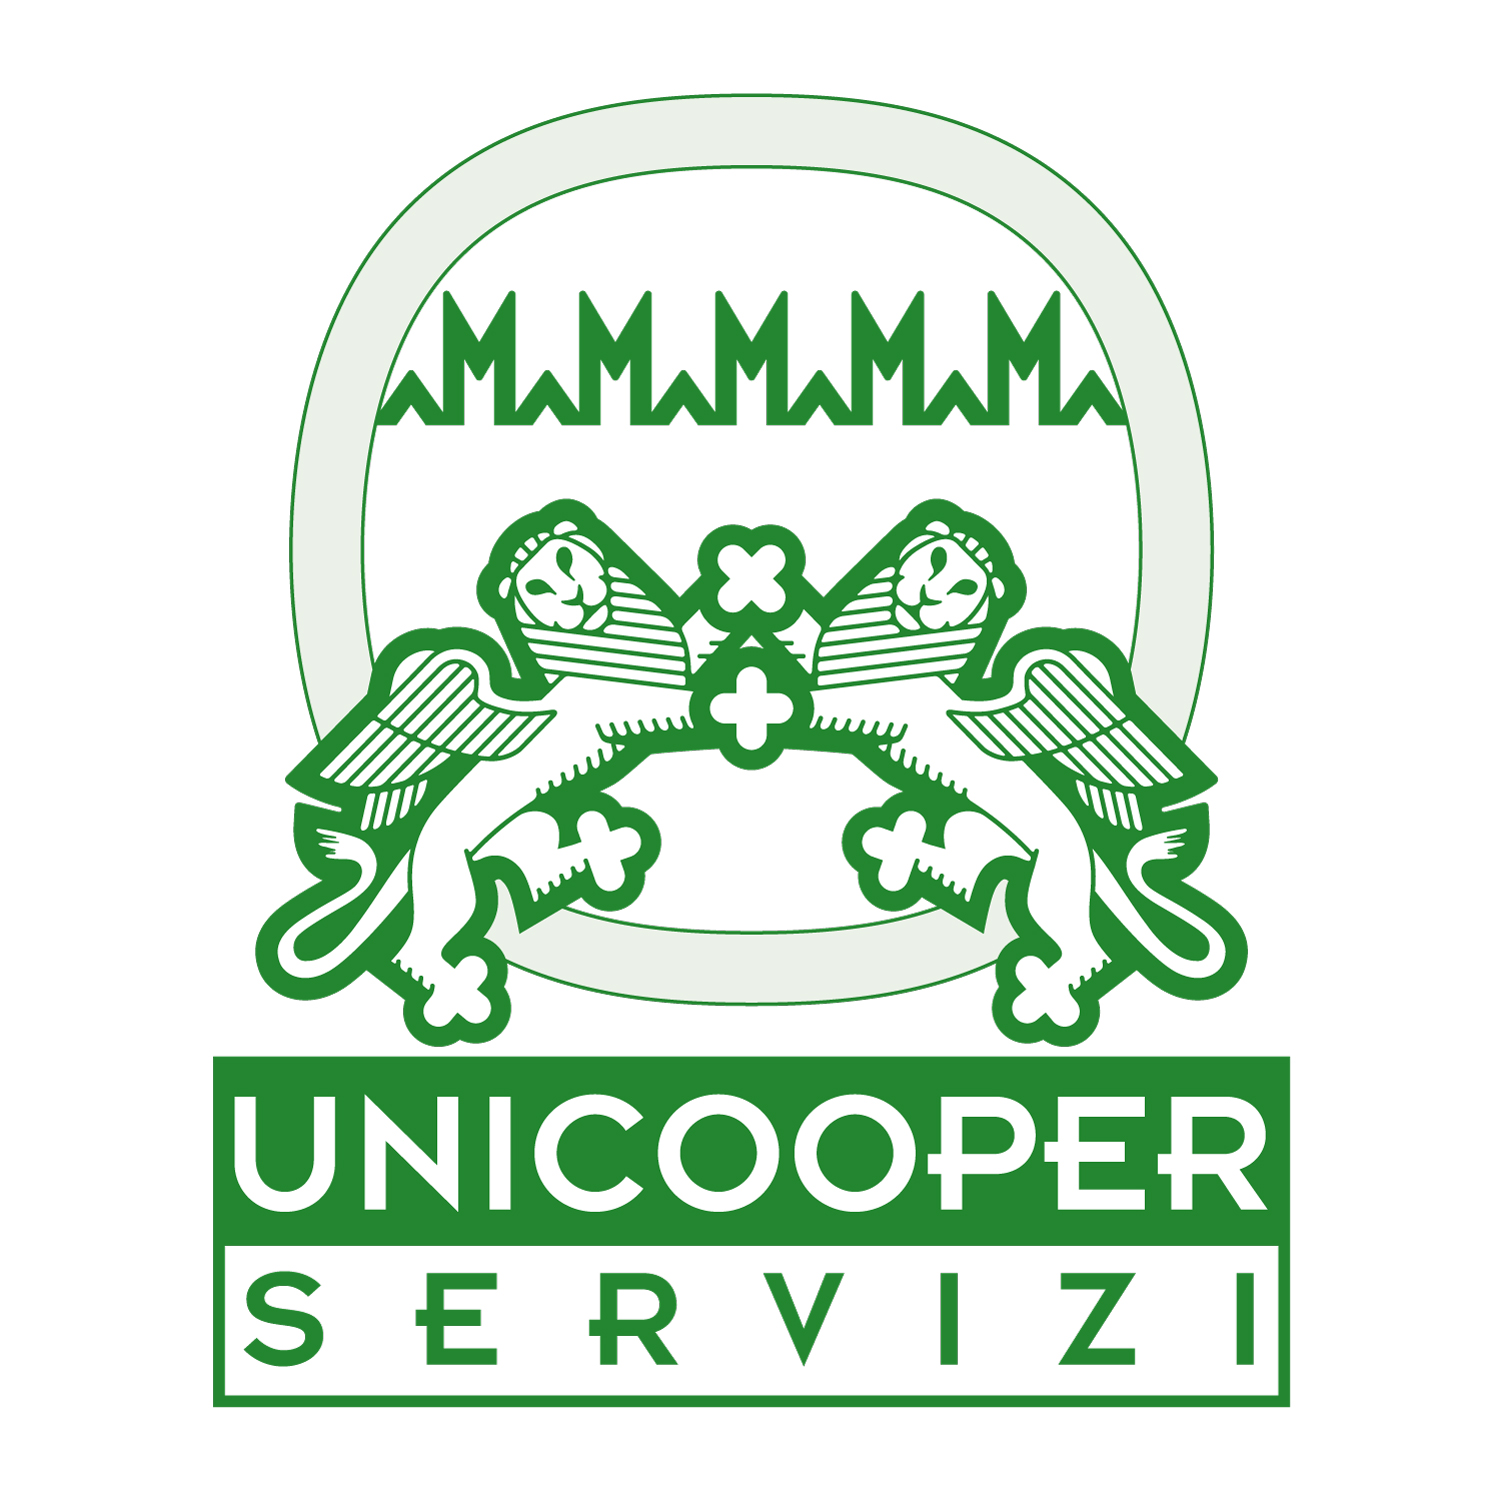 Unicooper